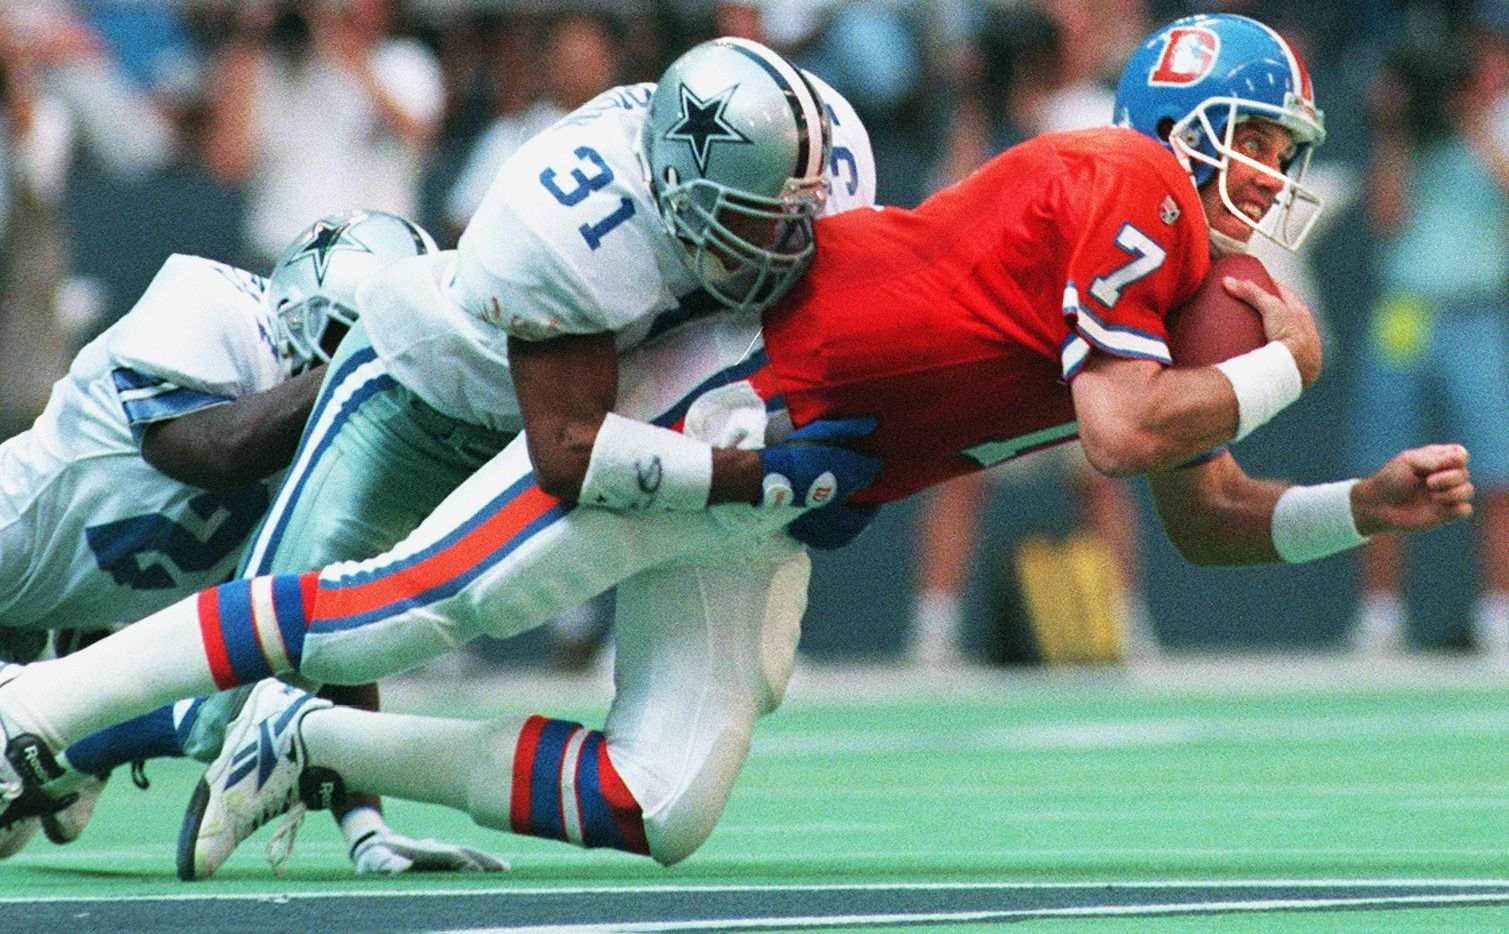 Cowboys safety Brock Marion (31) brings down Denver Broncos quarterback John Elway during the first half of their game at Texas Stadium on Sept. 10, 1995.